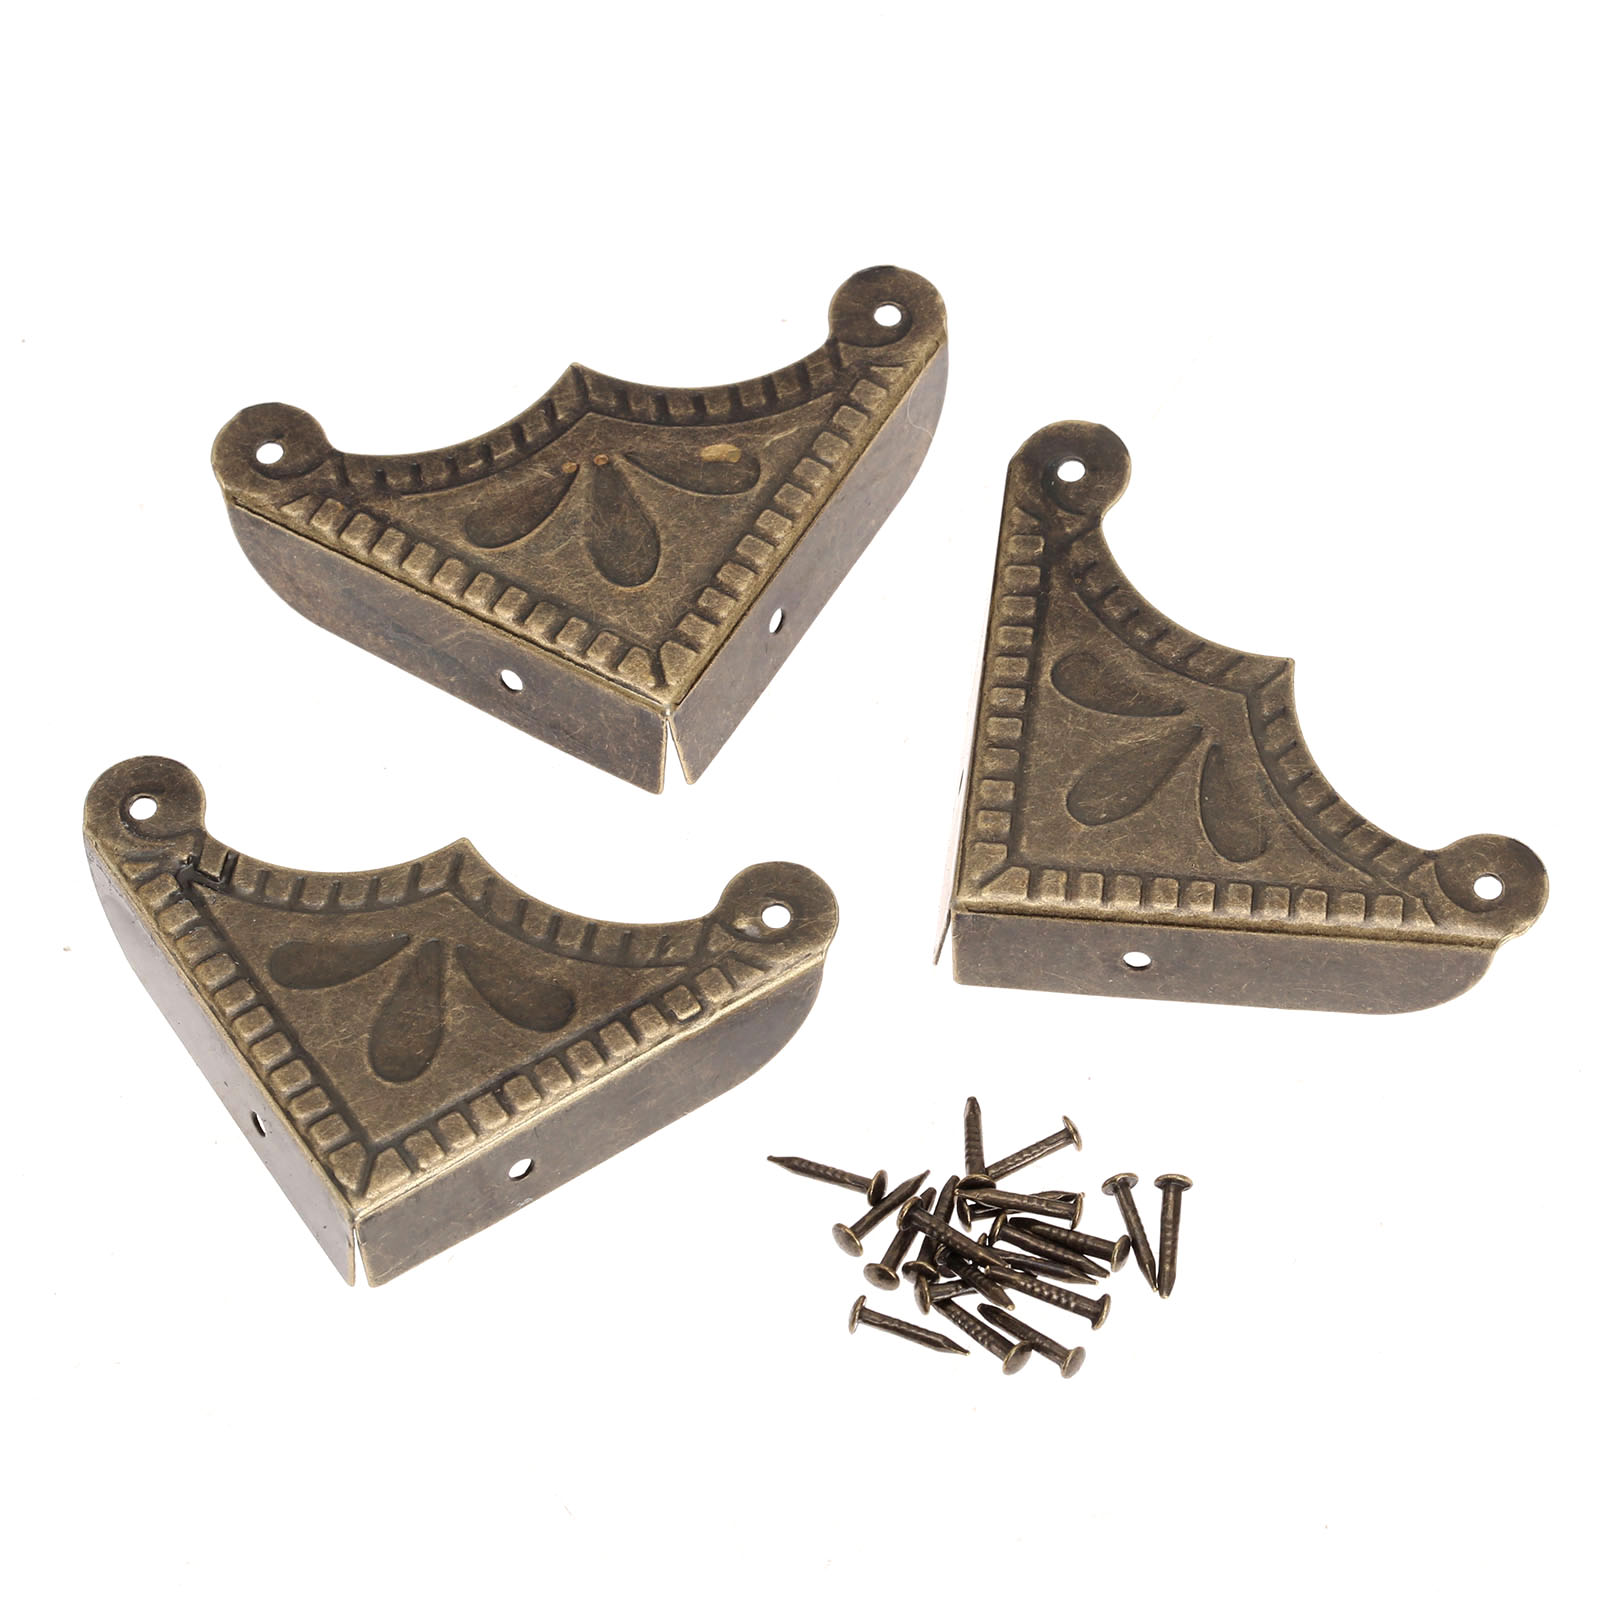 12pcs Decorative Corner Brackets For Scrapbook Bronze Corner Wooden Box Edge Cover Corner Protector Guard Esquinas Para Armarios